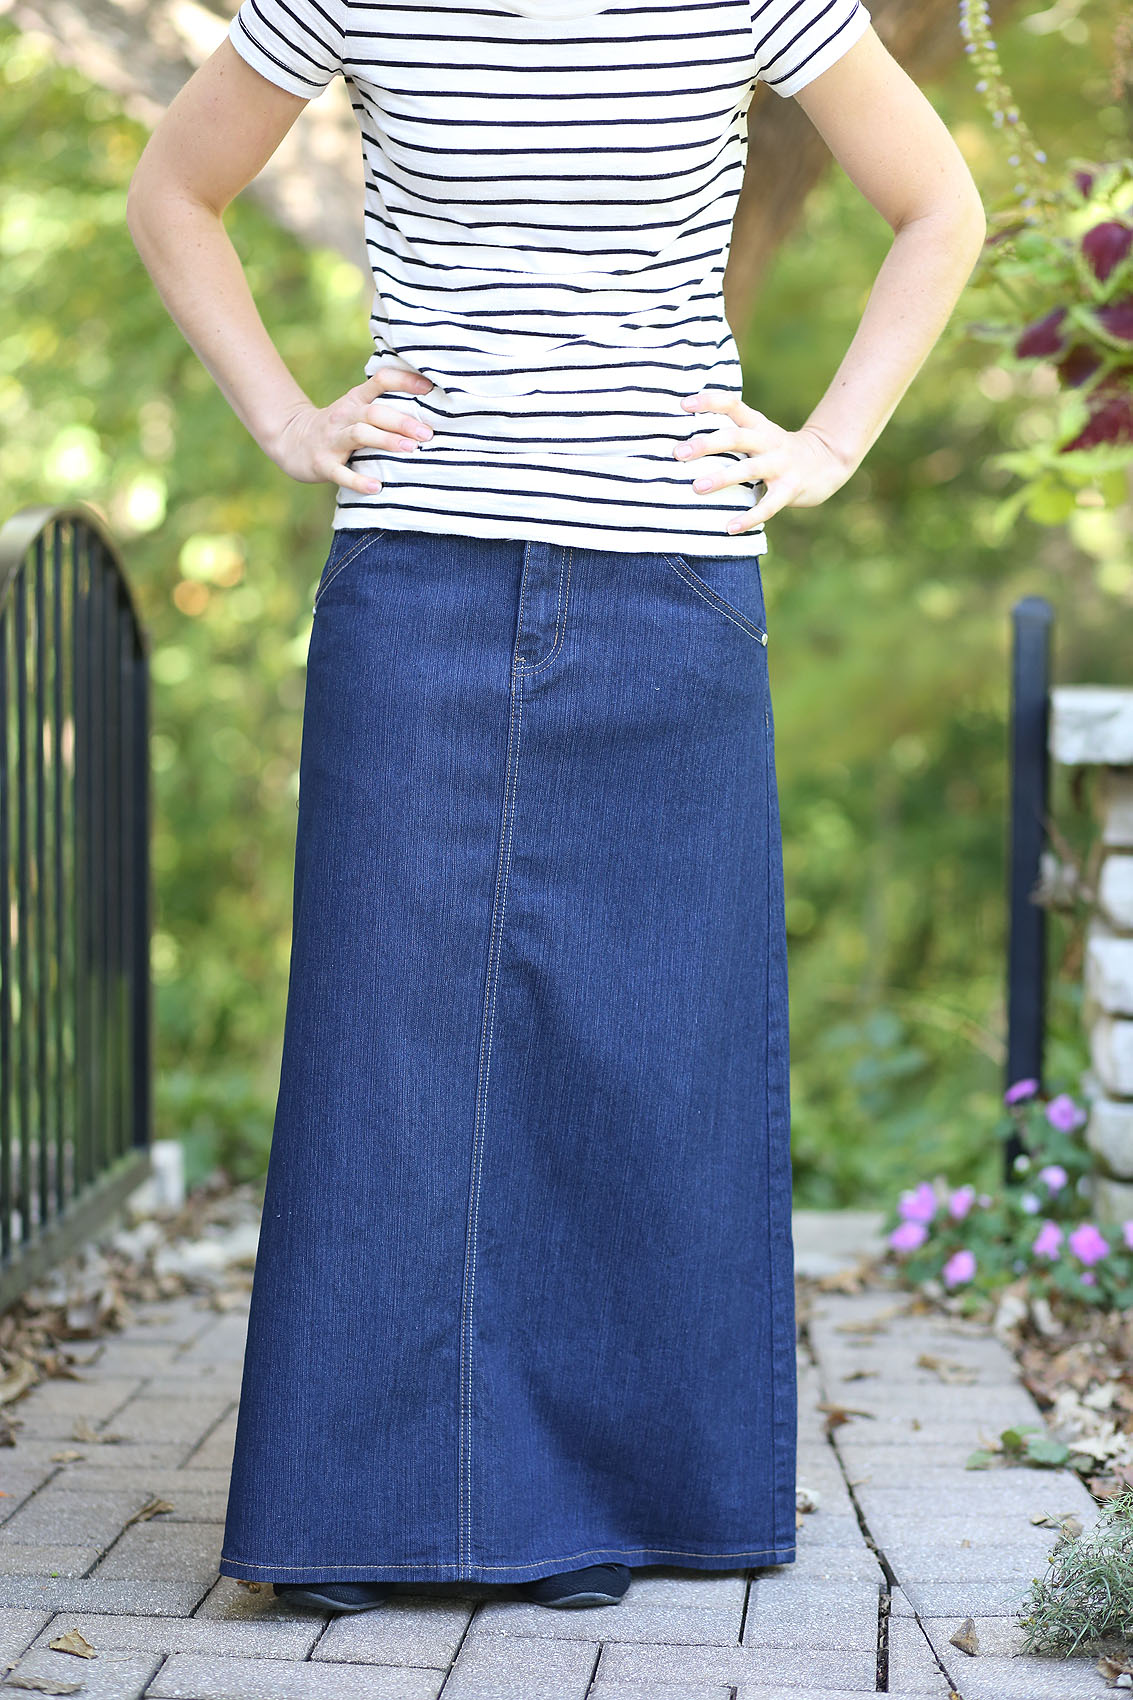 Plus Size Timeless Class Modest Long Denim Skirt | Modest ... |Western Long Denim Skirts Modest